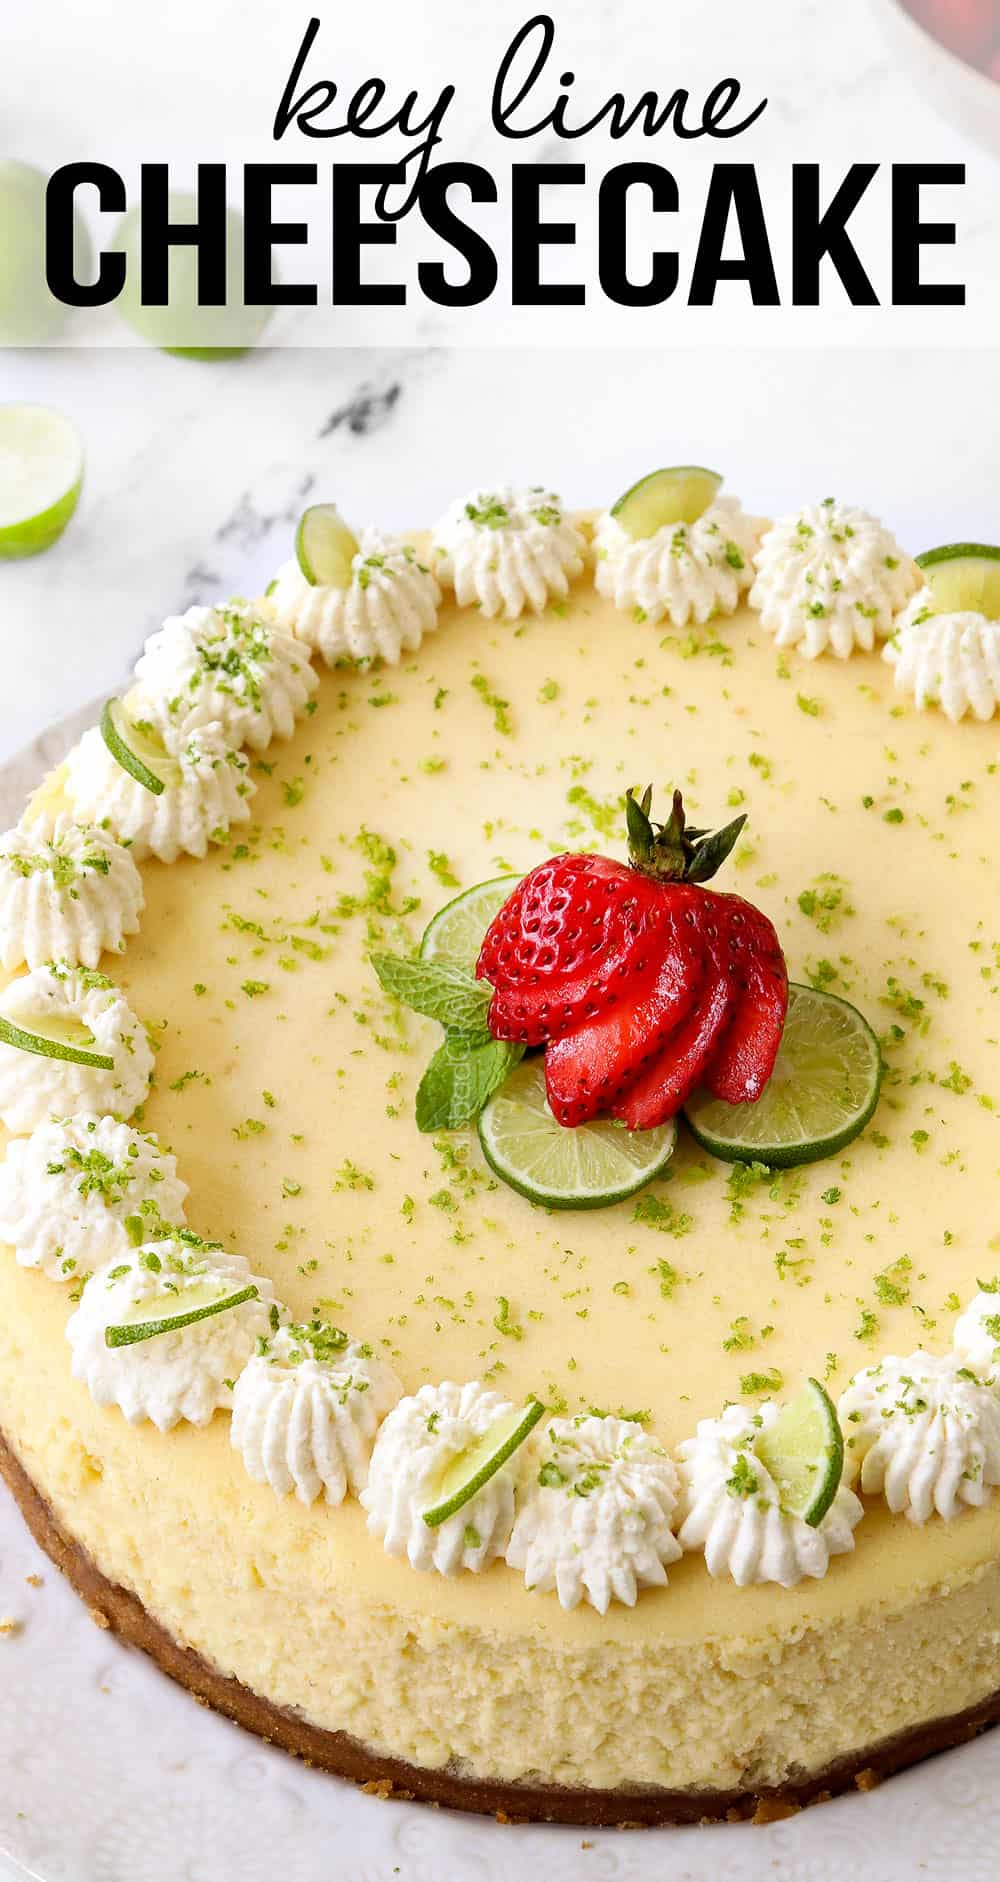 key lime cheesecake garnished with whipped cream, key limes and strawberries